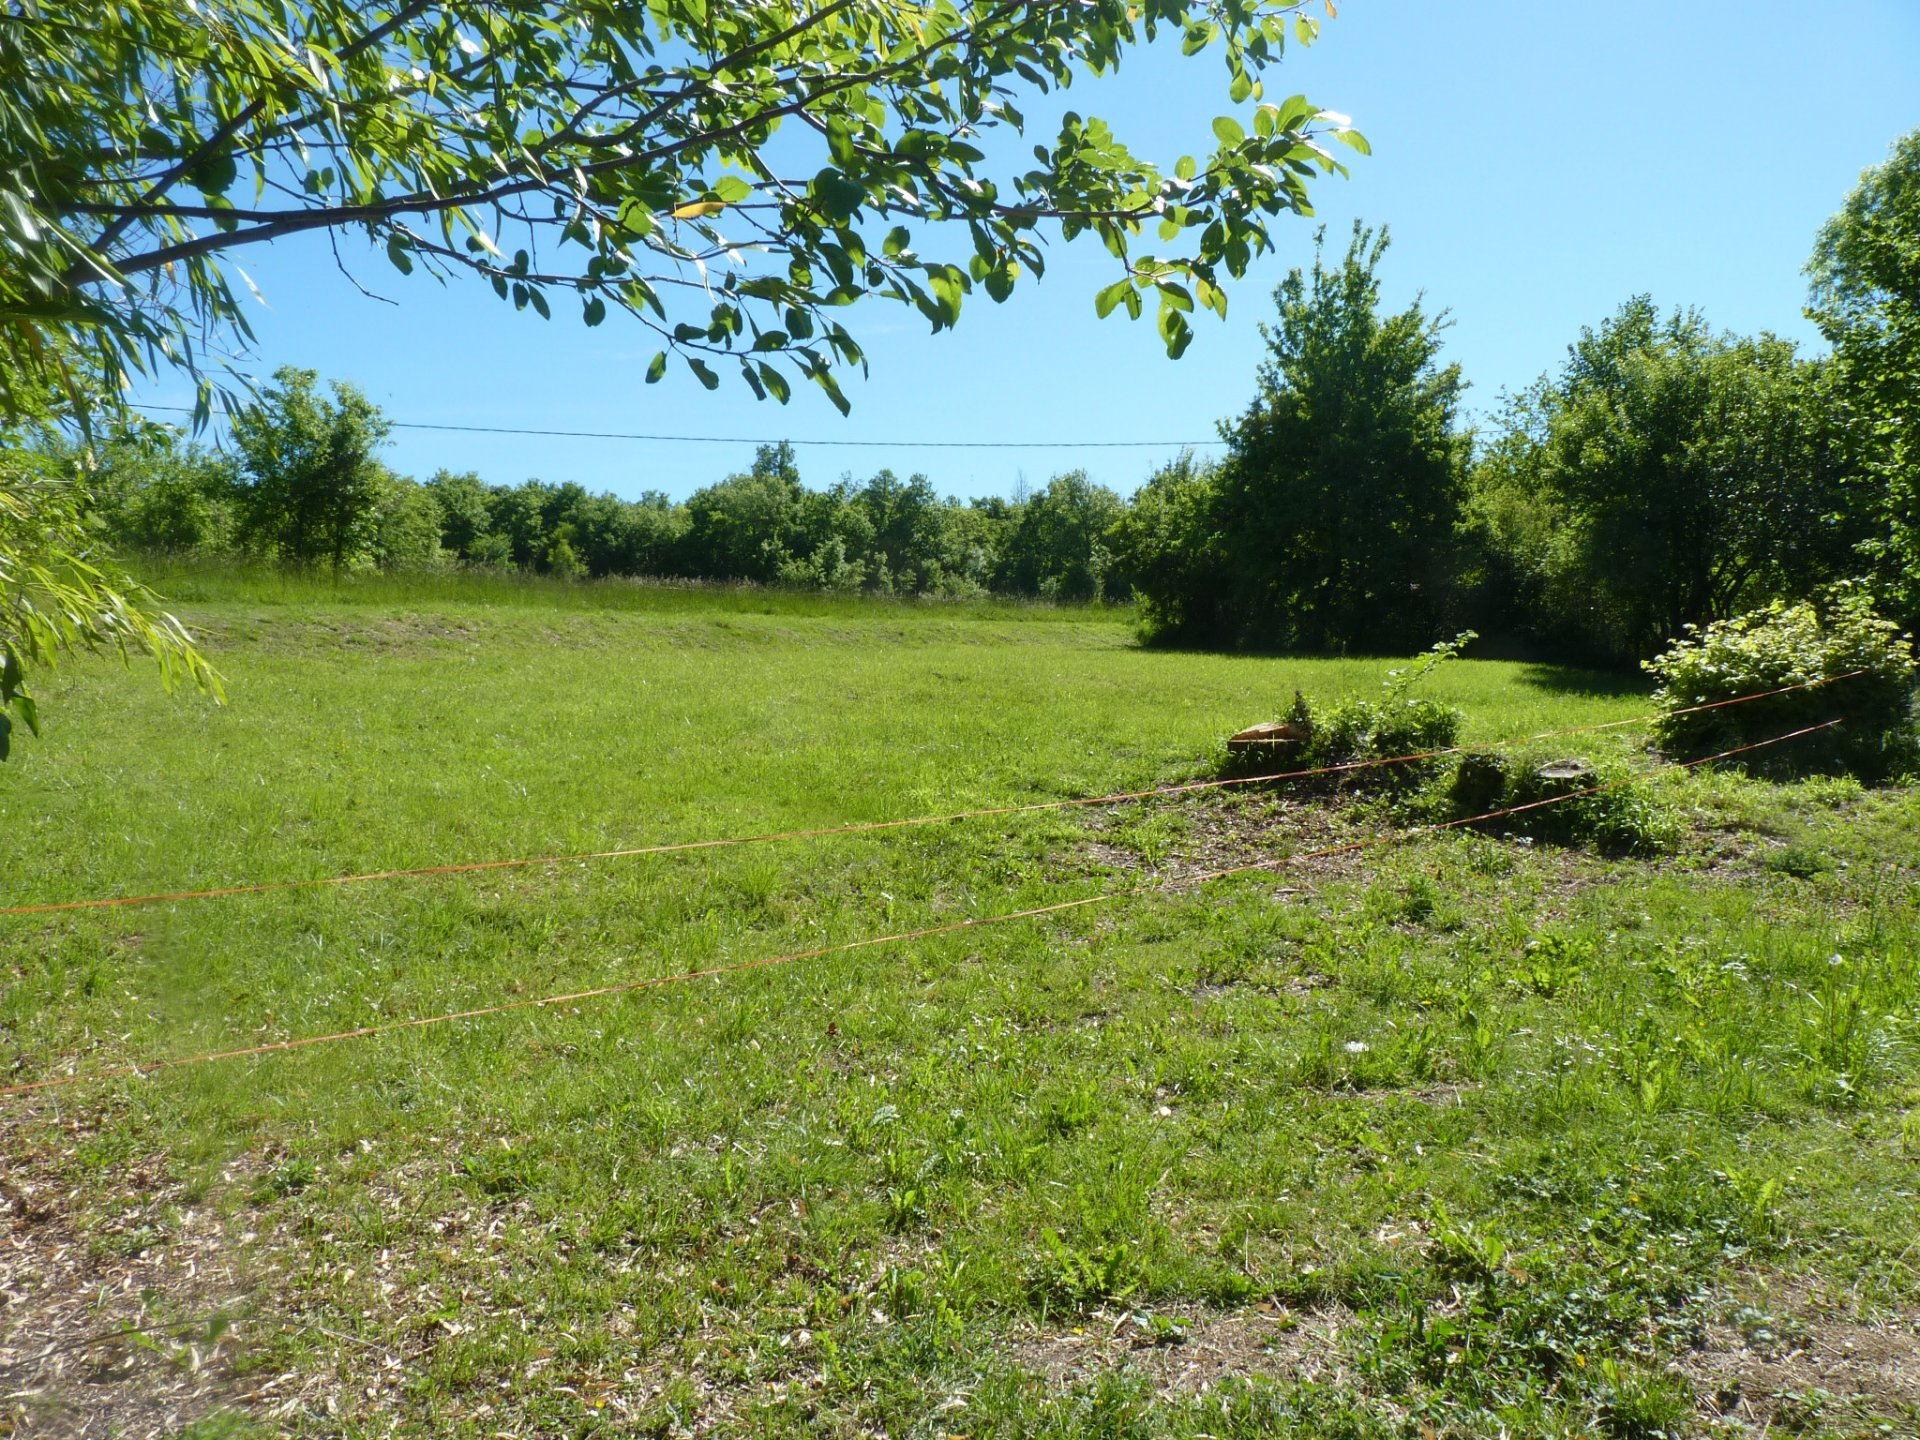 5 minutes from Boussens, building plot of 940 m²